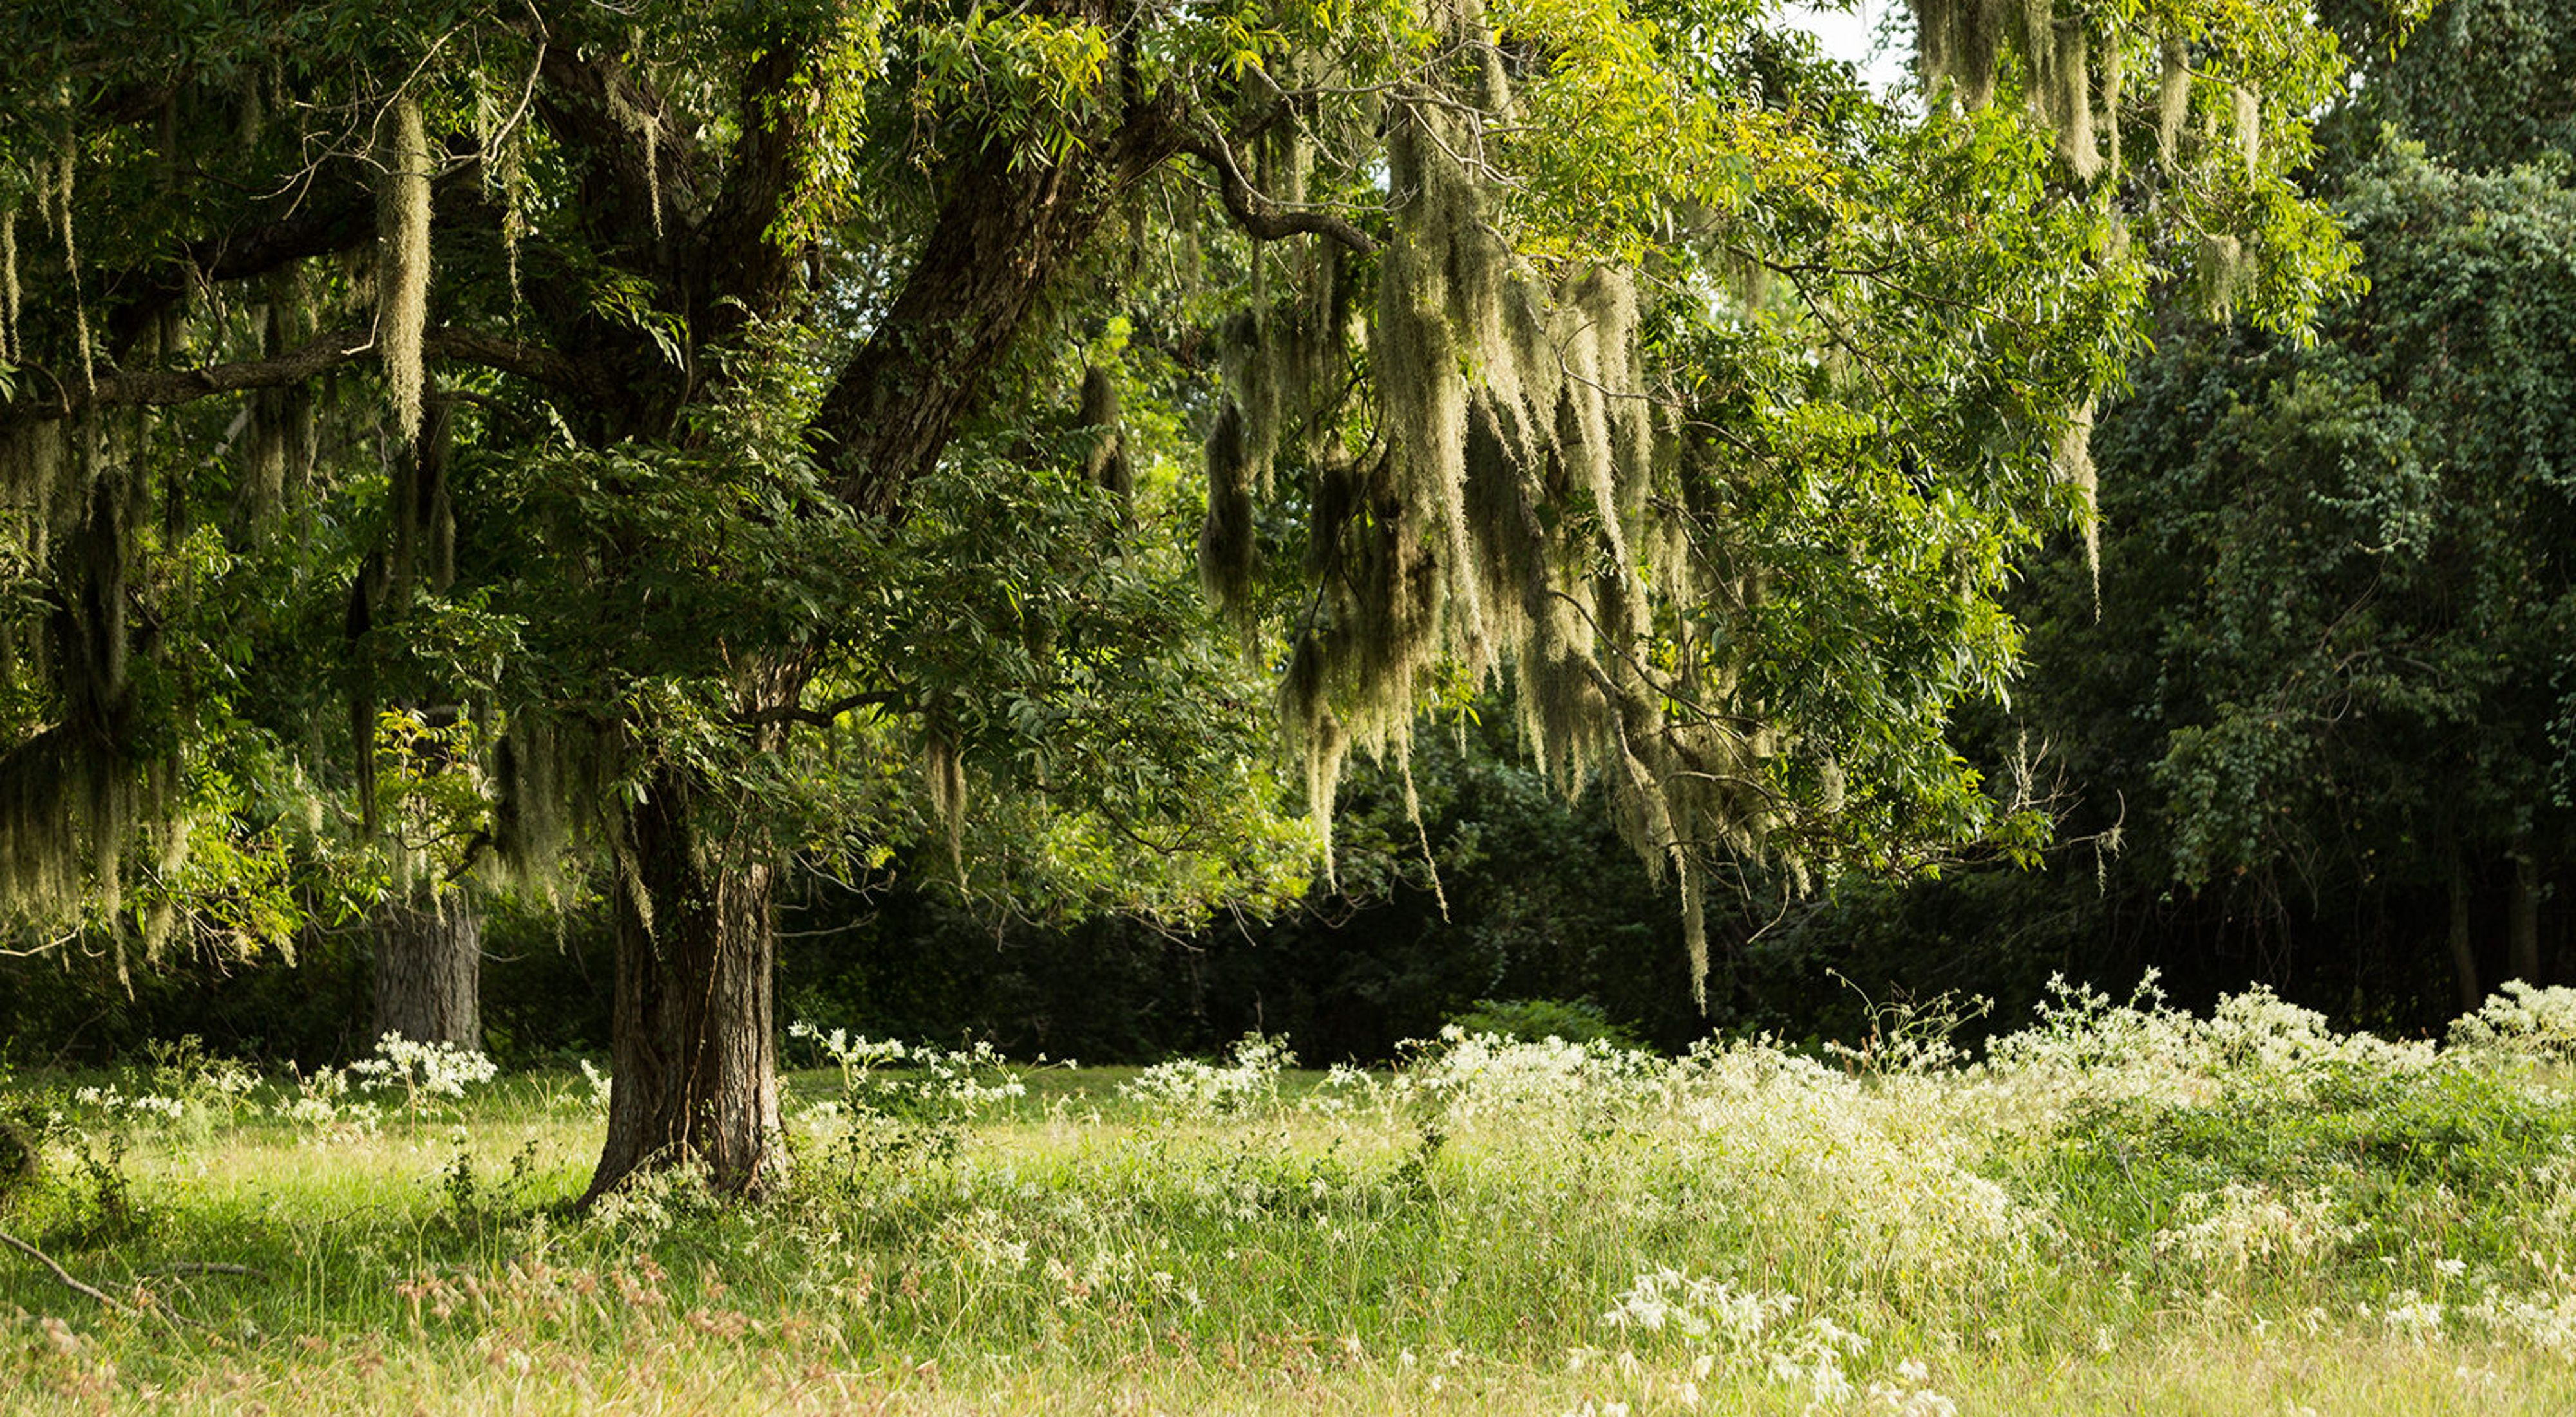 green-leaved live oak tree stands in meadow with Spanish moss hanging from its branches